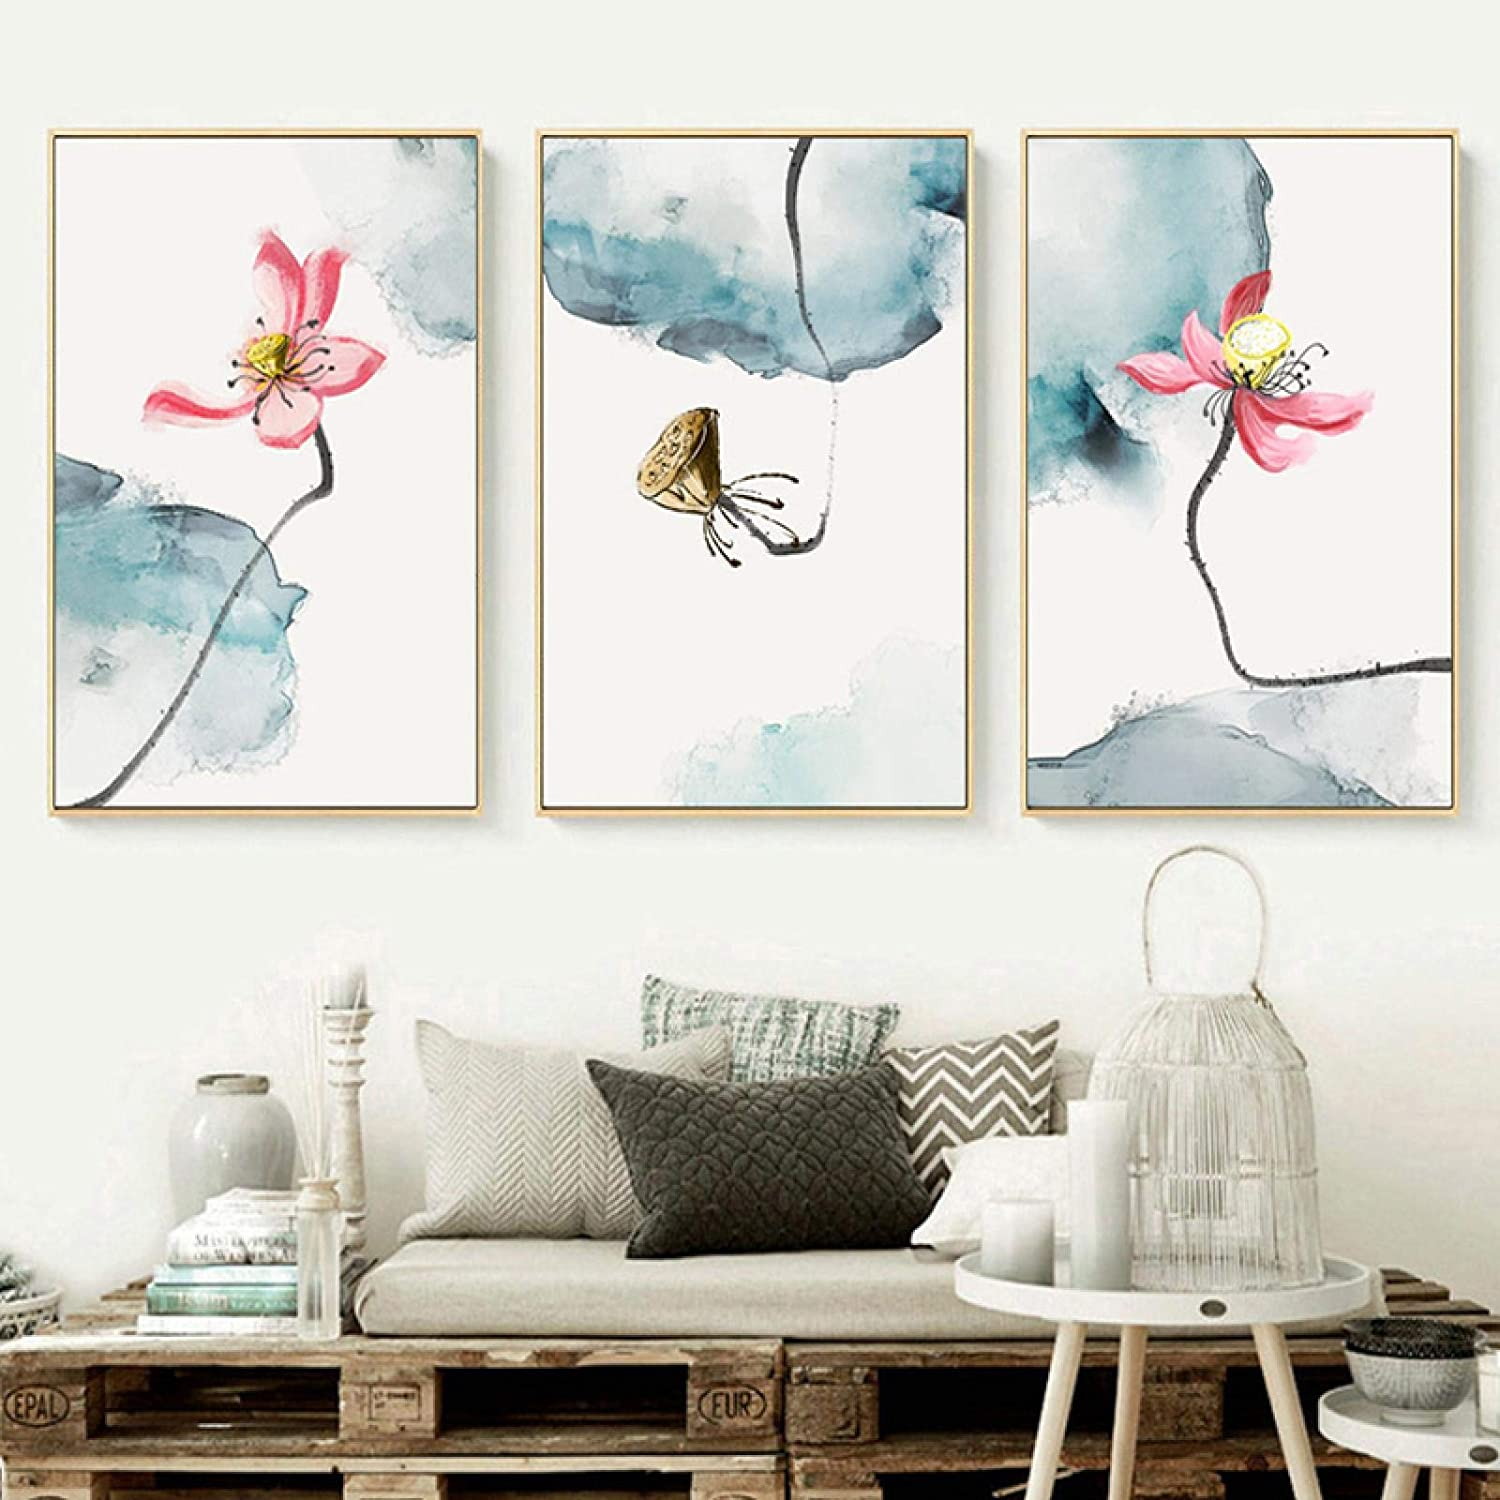 Sunsightly Print on Canvas Watercolor Floral Canva Lotus Ranking TOP9 Chinese Charlotte Mall